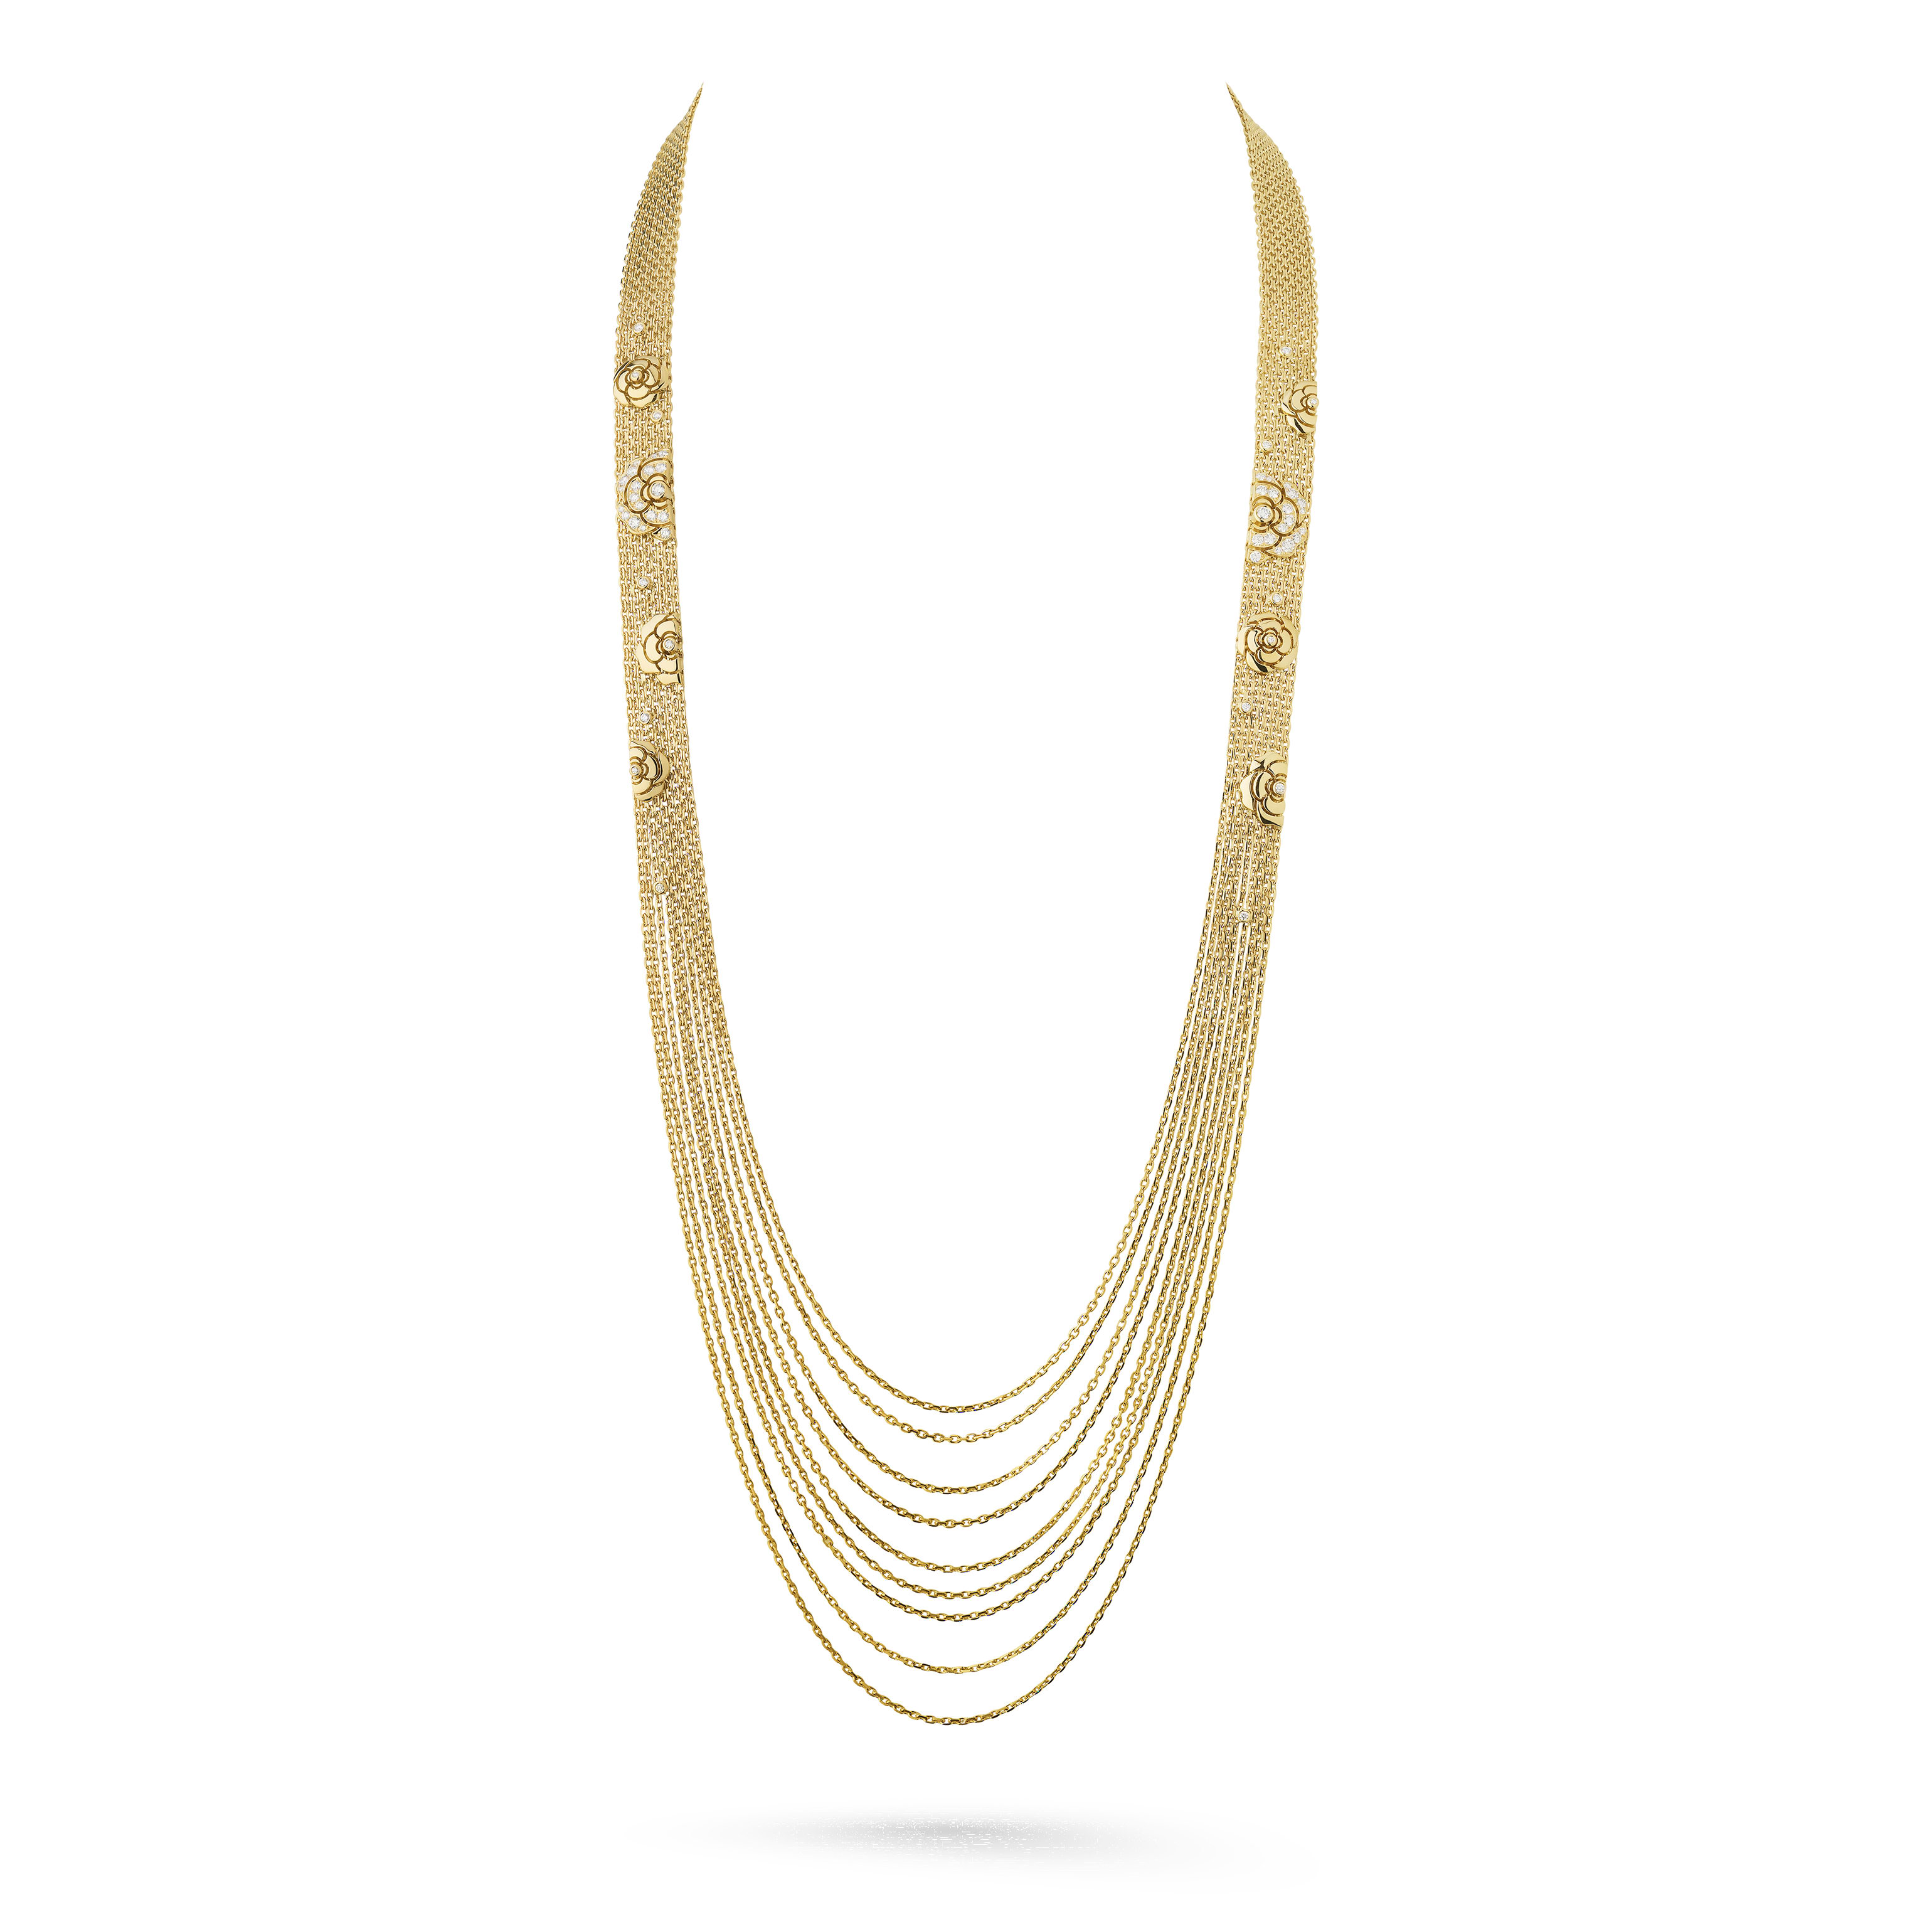 Impression de Camélia long necklace - 18K yellow gold, diamonds - CHANEL - Default view - see standard sized version